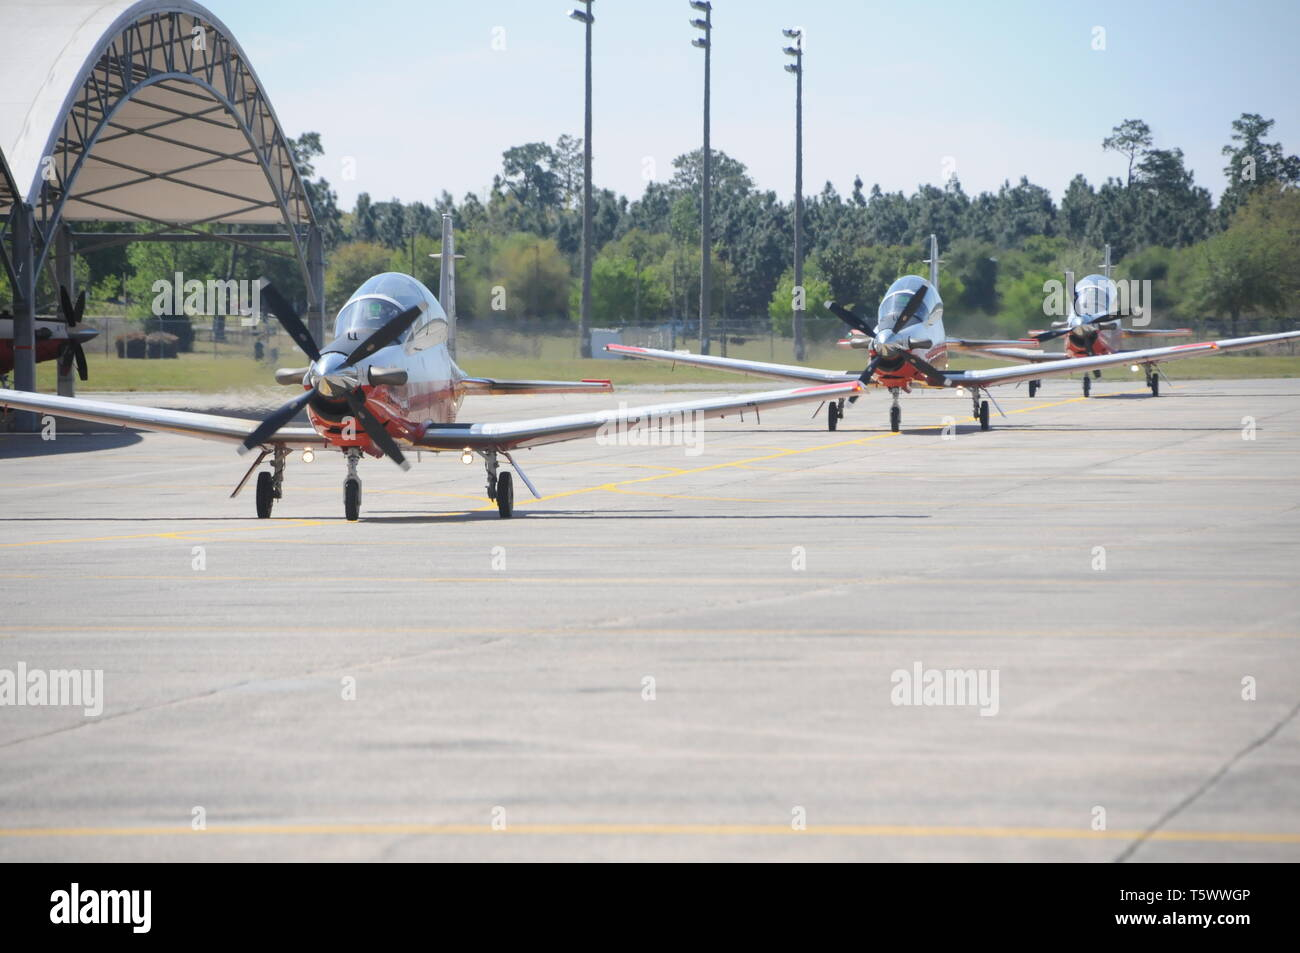 190401-N-OU681-1390 NAVAL AIR STATION WHITING FIELD, Fla. (April 1, 2019) -- Naval aviators from Training Squadron (VT) 2 taxi back after a training flight in T-6B Texan II single-engine turboprop aircraft at Naval Air Station Whiting Field, Fla., April 1. VT-2 is the Navy's oldest primary training squadron and graduates approximately 250 student each year.  (U.S. Navy photo by Lt. Michelle Tucker/Released) - Stock Image